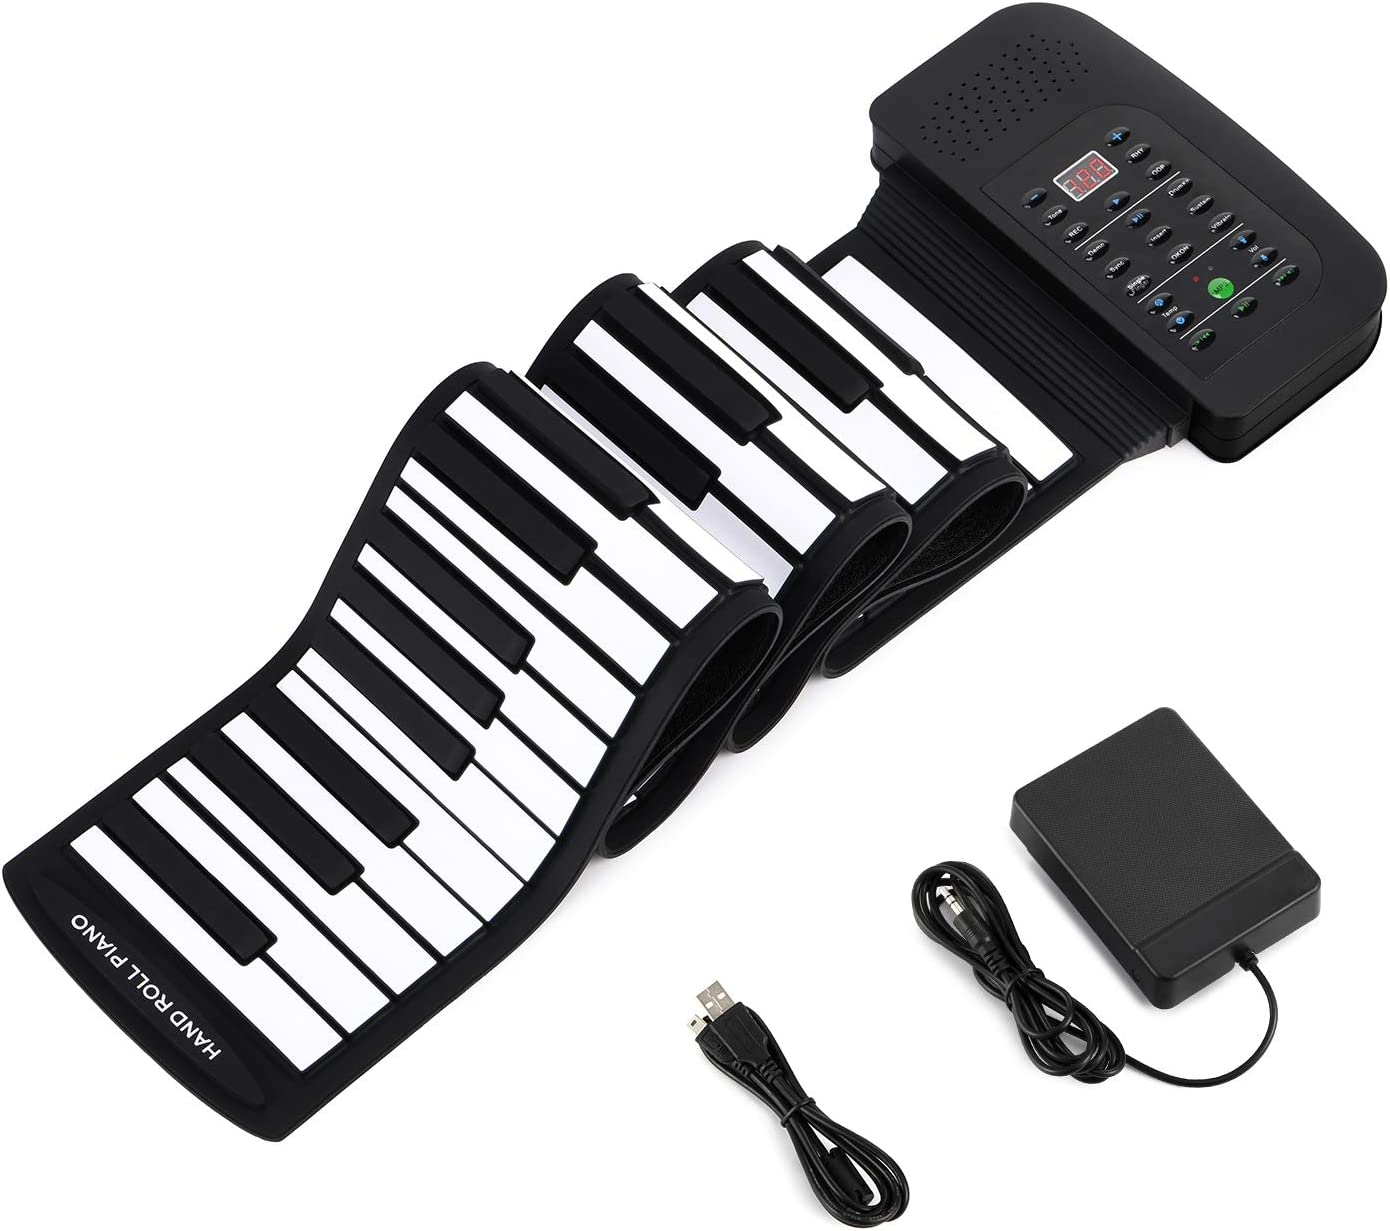 Donner 88 Keys Roll Up Digital Piano Black Portable Keyboard with Pedal for Beginners or Finger Power Practice